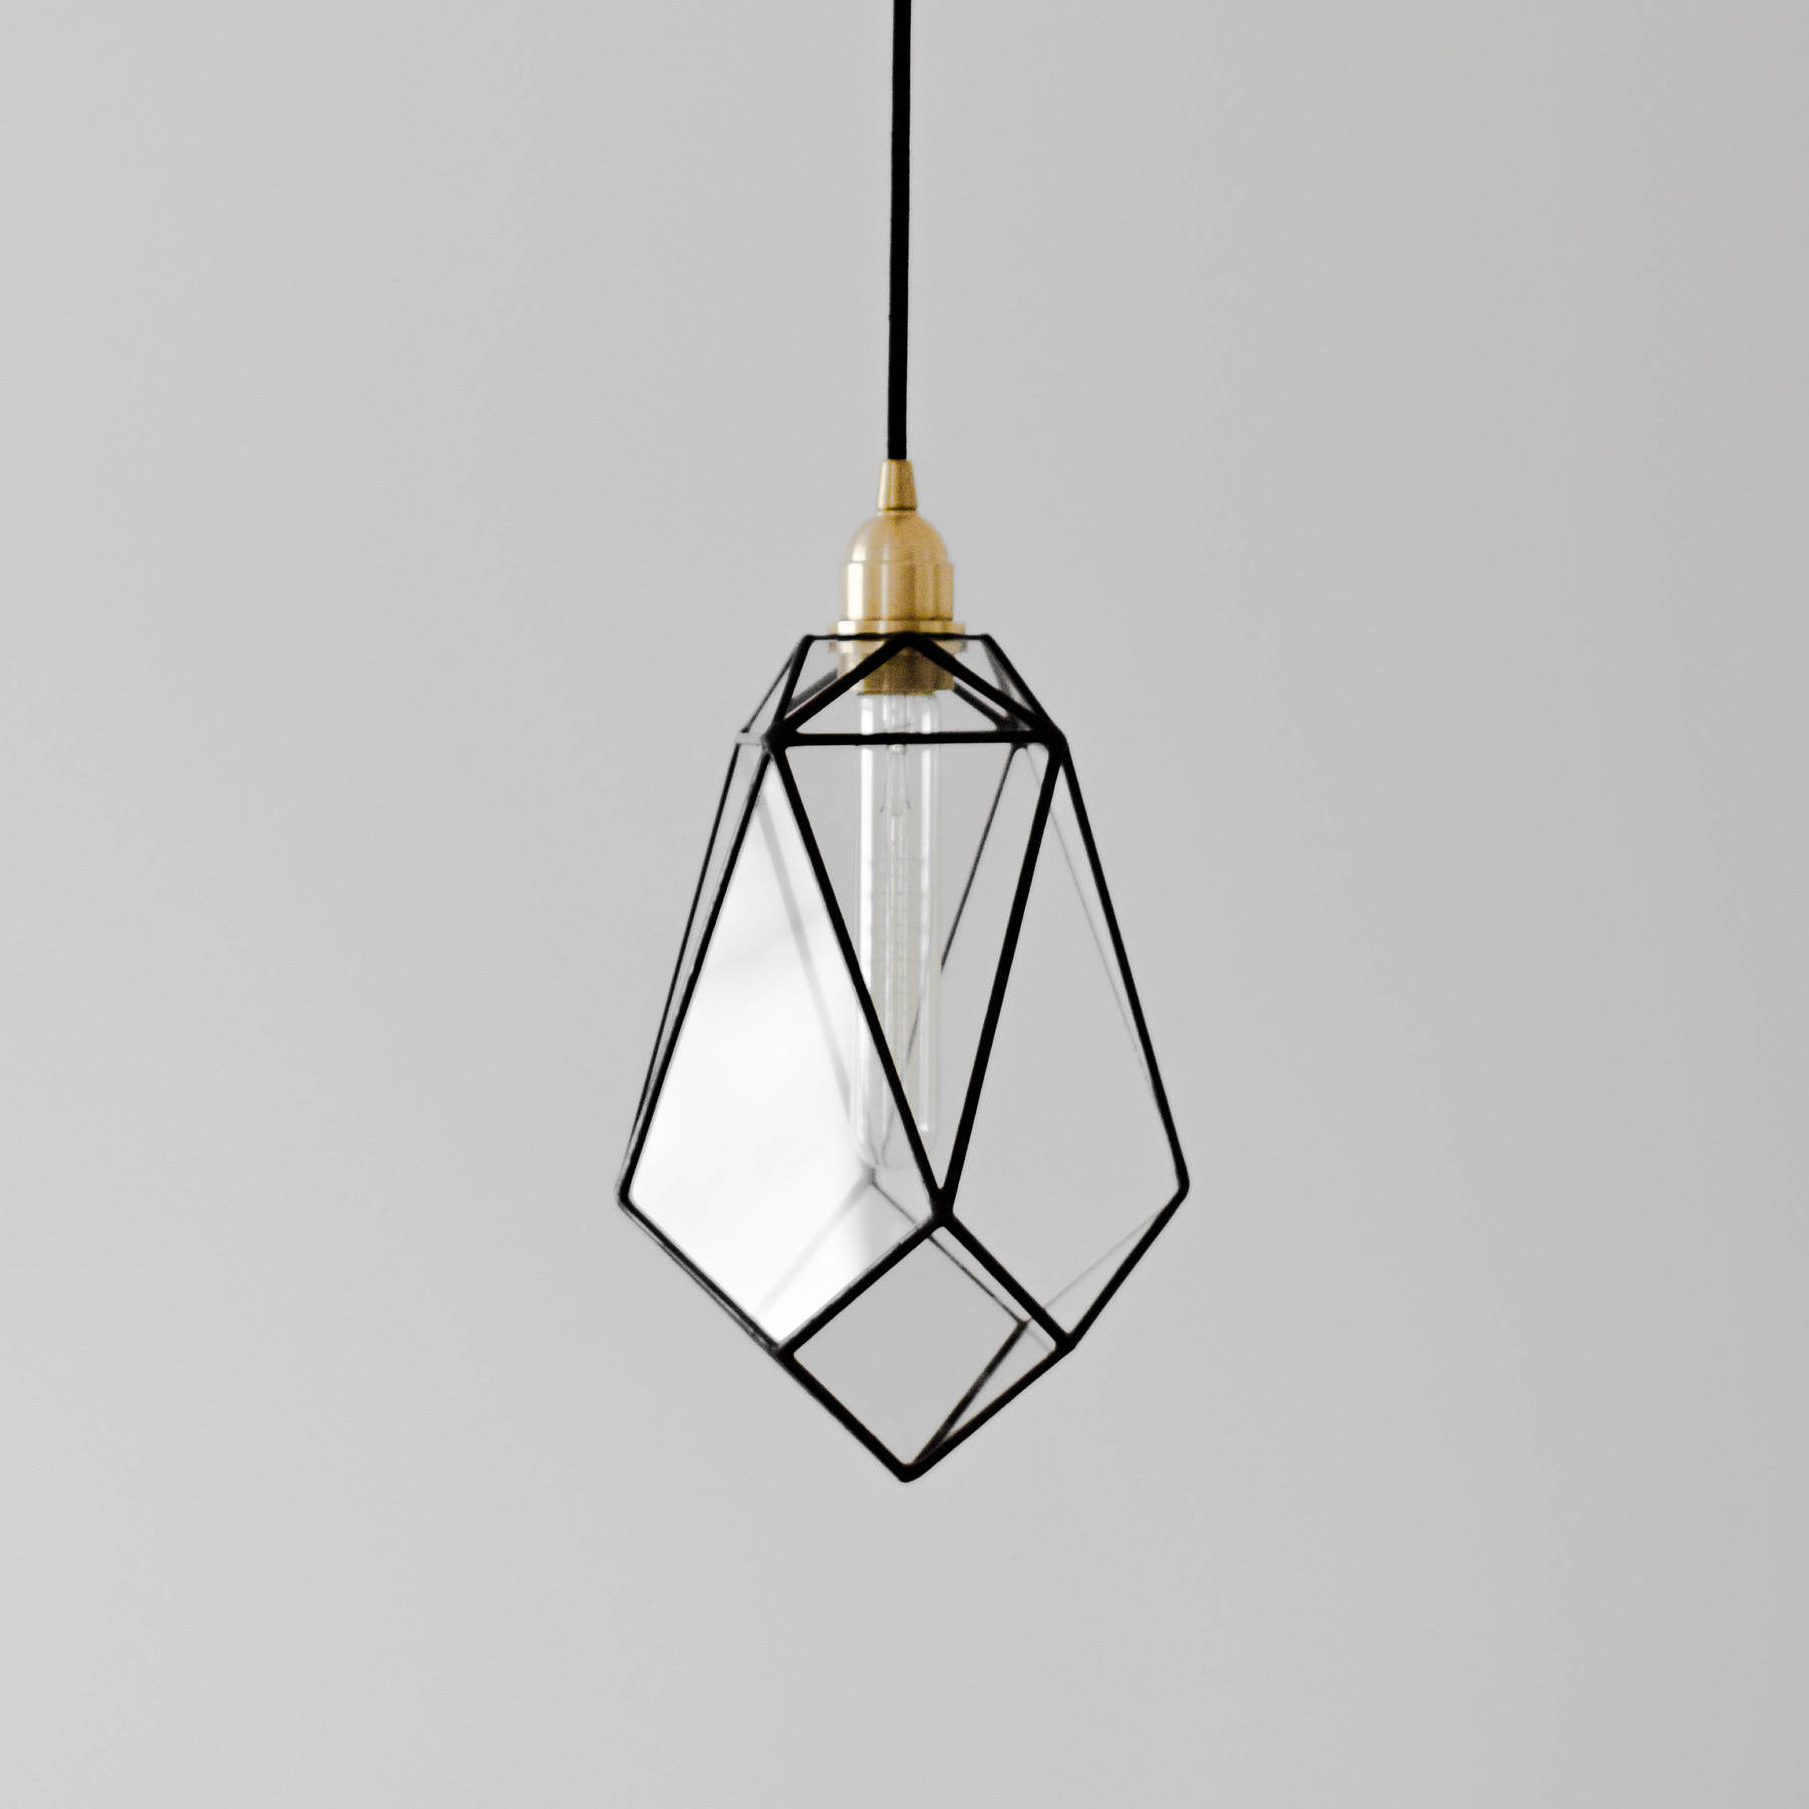 Fashionable Rossi Industrial Vintage 1 Light Geometric Pendants With Regard To Crystal Glass Chandelier / Geometric Pendant Light / Warm Edison Bulb Lamp (View 4 of 25)